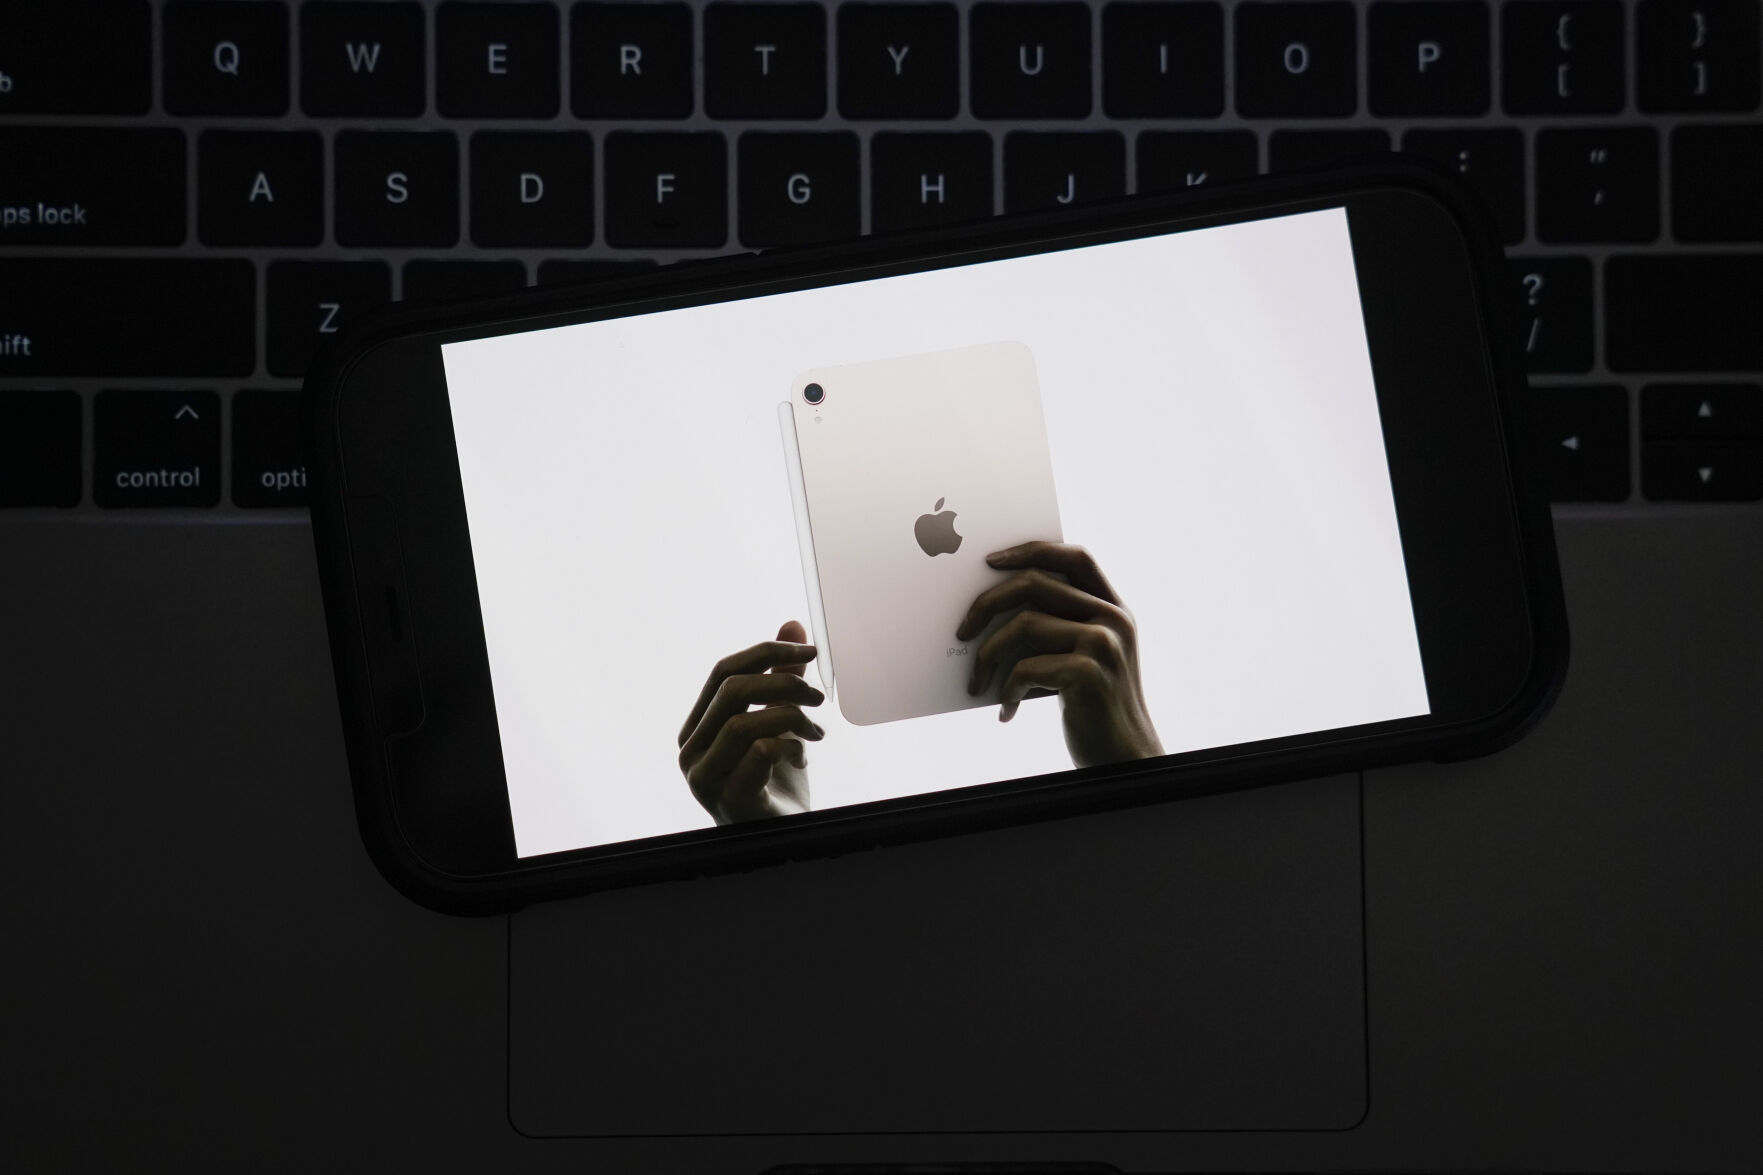 <p>Seen on the screen of a device in La Habra, Calif., the new iPad Mini is introduced during a virtual event held to announce new Apple products Tuesday, Sept. 14, 2021. (AP Photo/Jae C. Hong)</p>